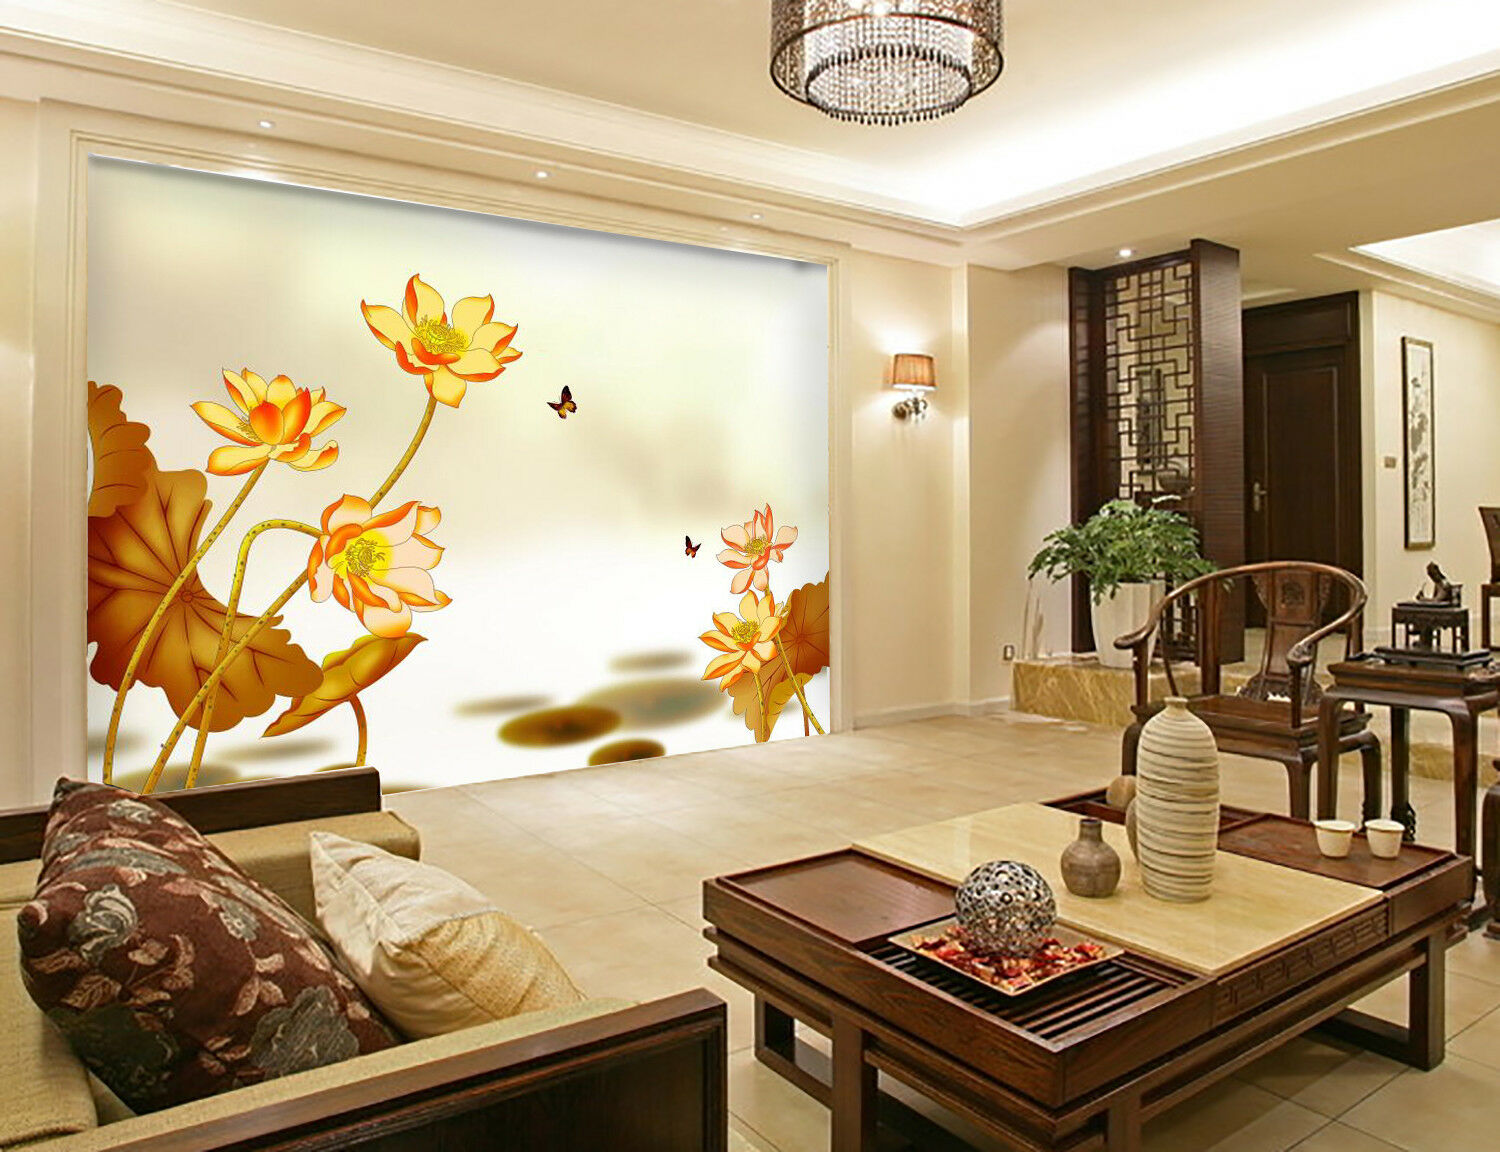 3D Golden Lotus 99 Wallpaper Mural Wall Print Wall Wallpaper Murals US Carly